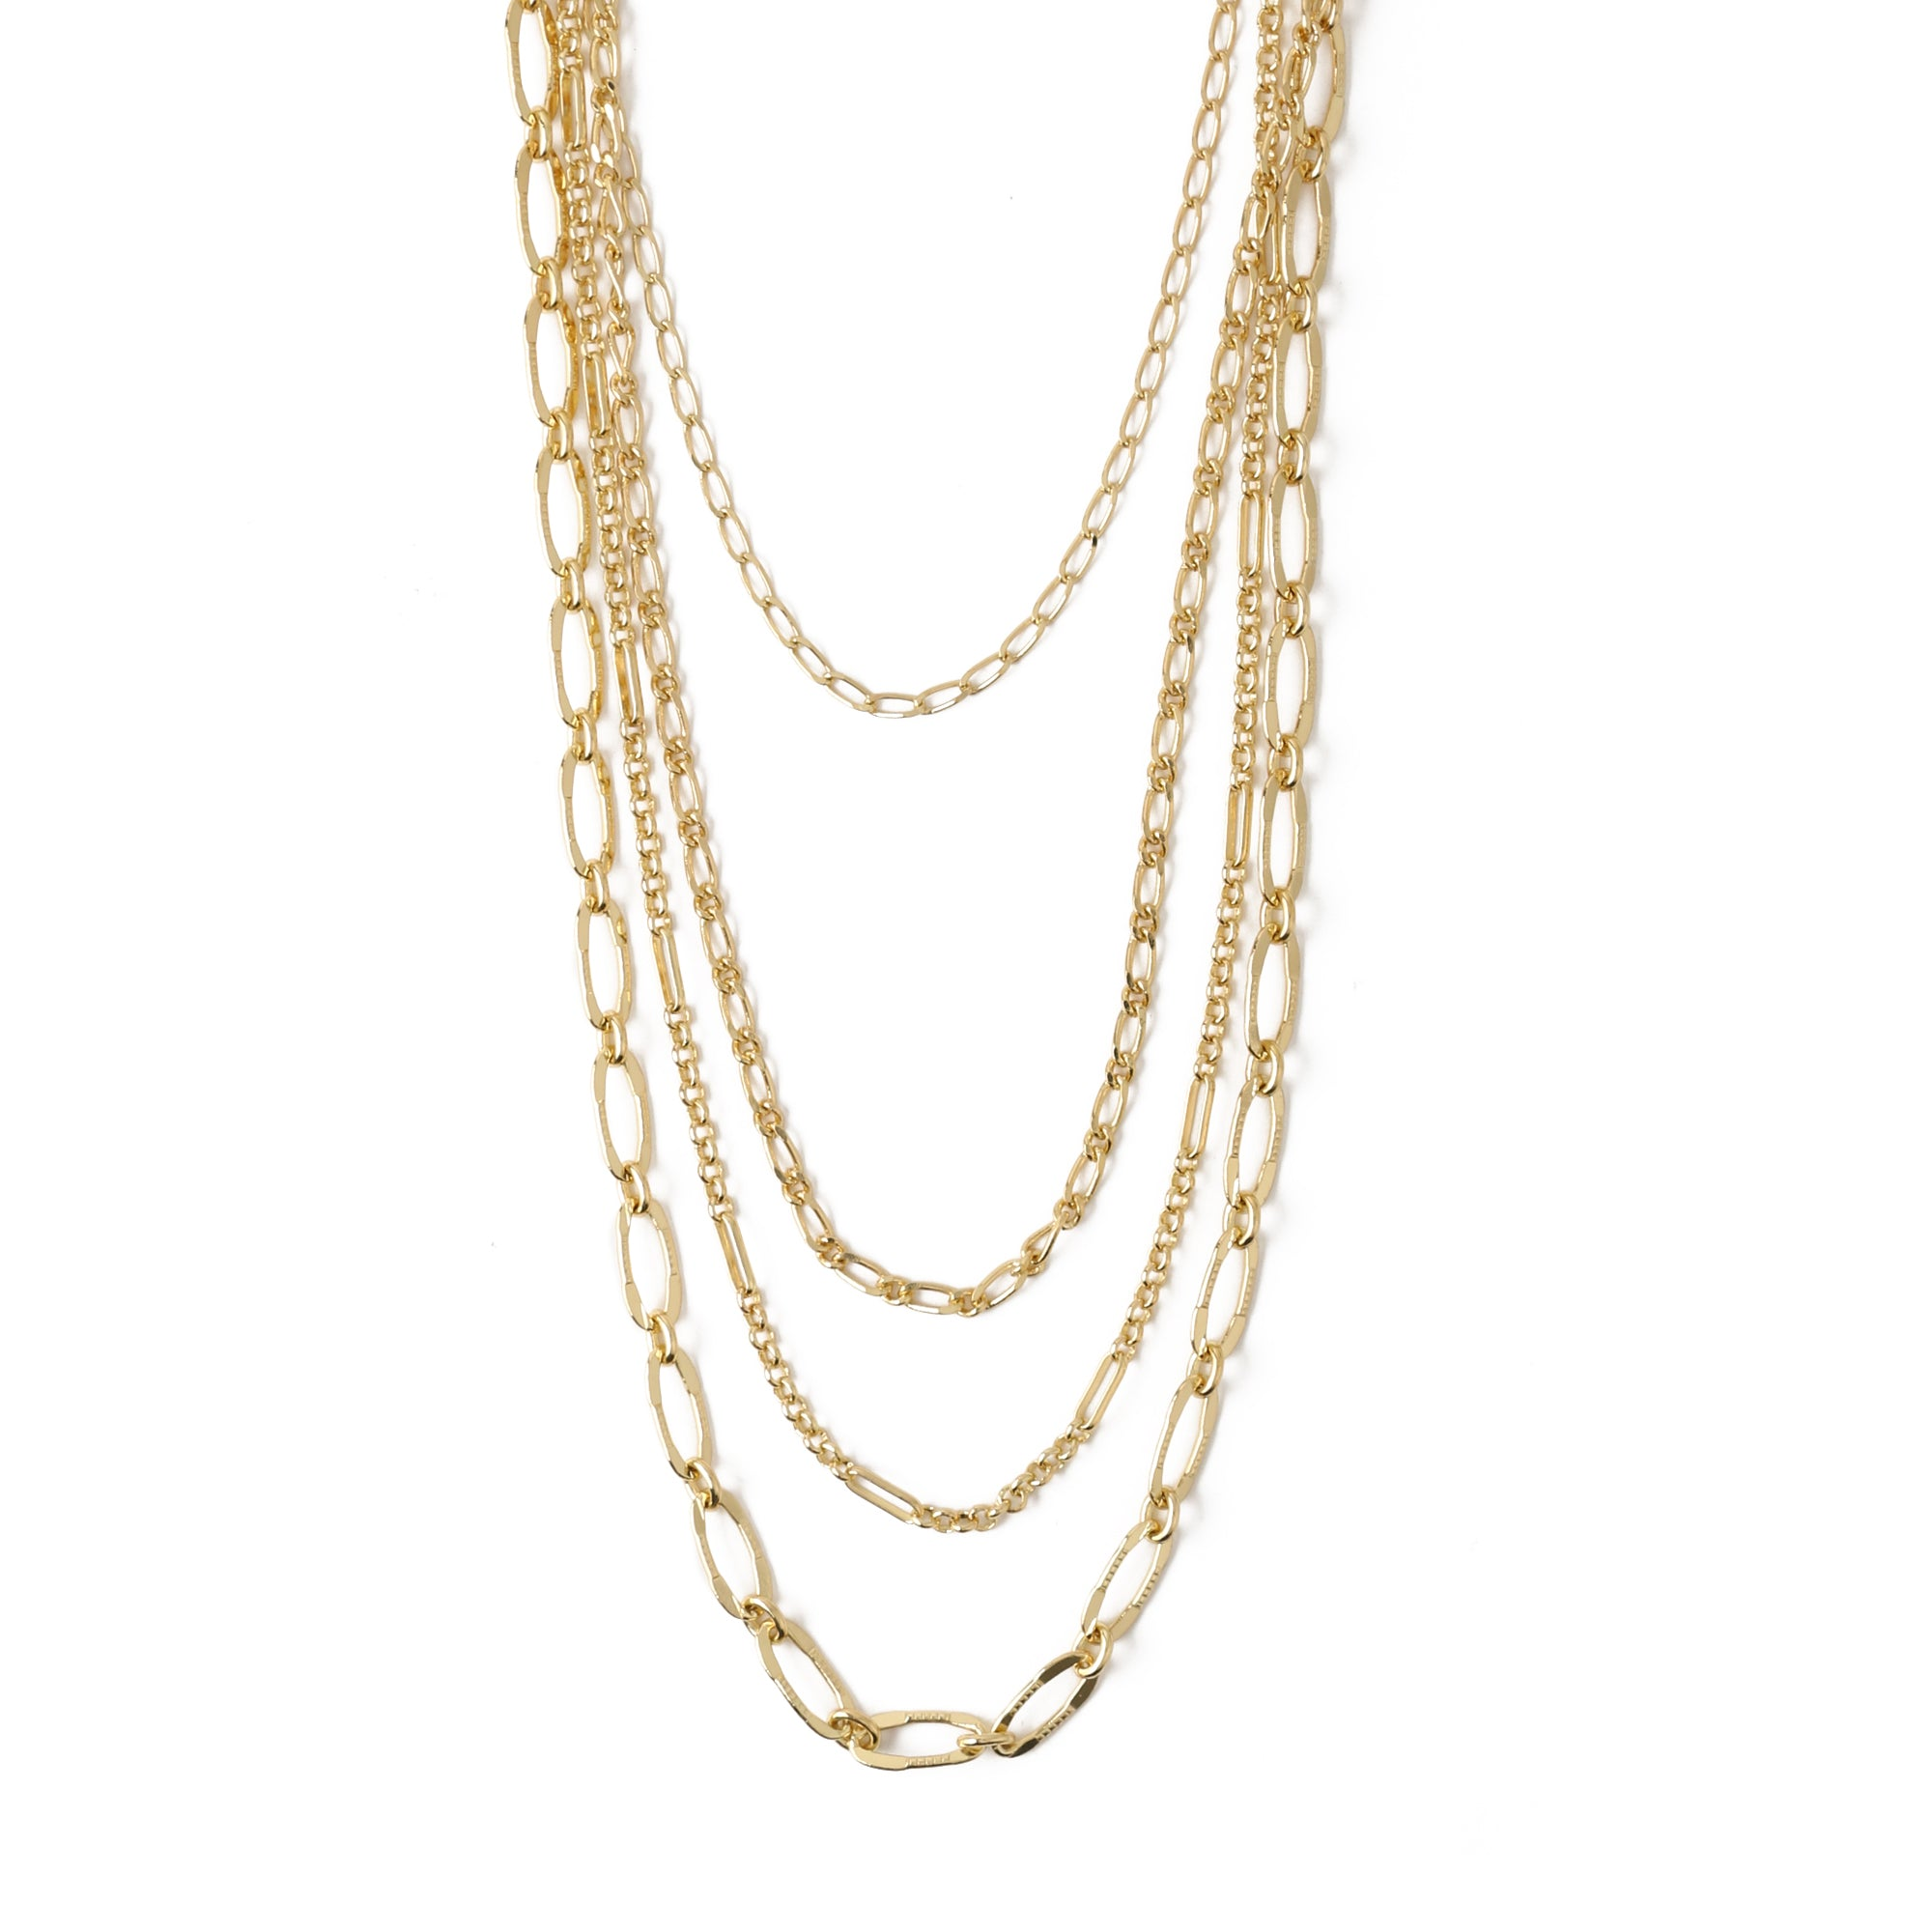 Mixed Chunky Chain 4 Row Necklace